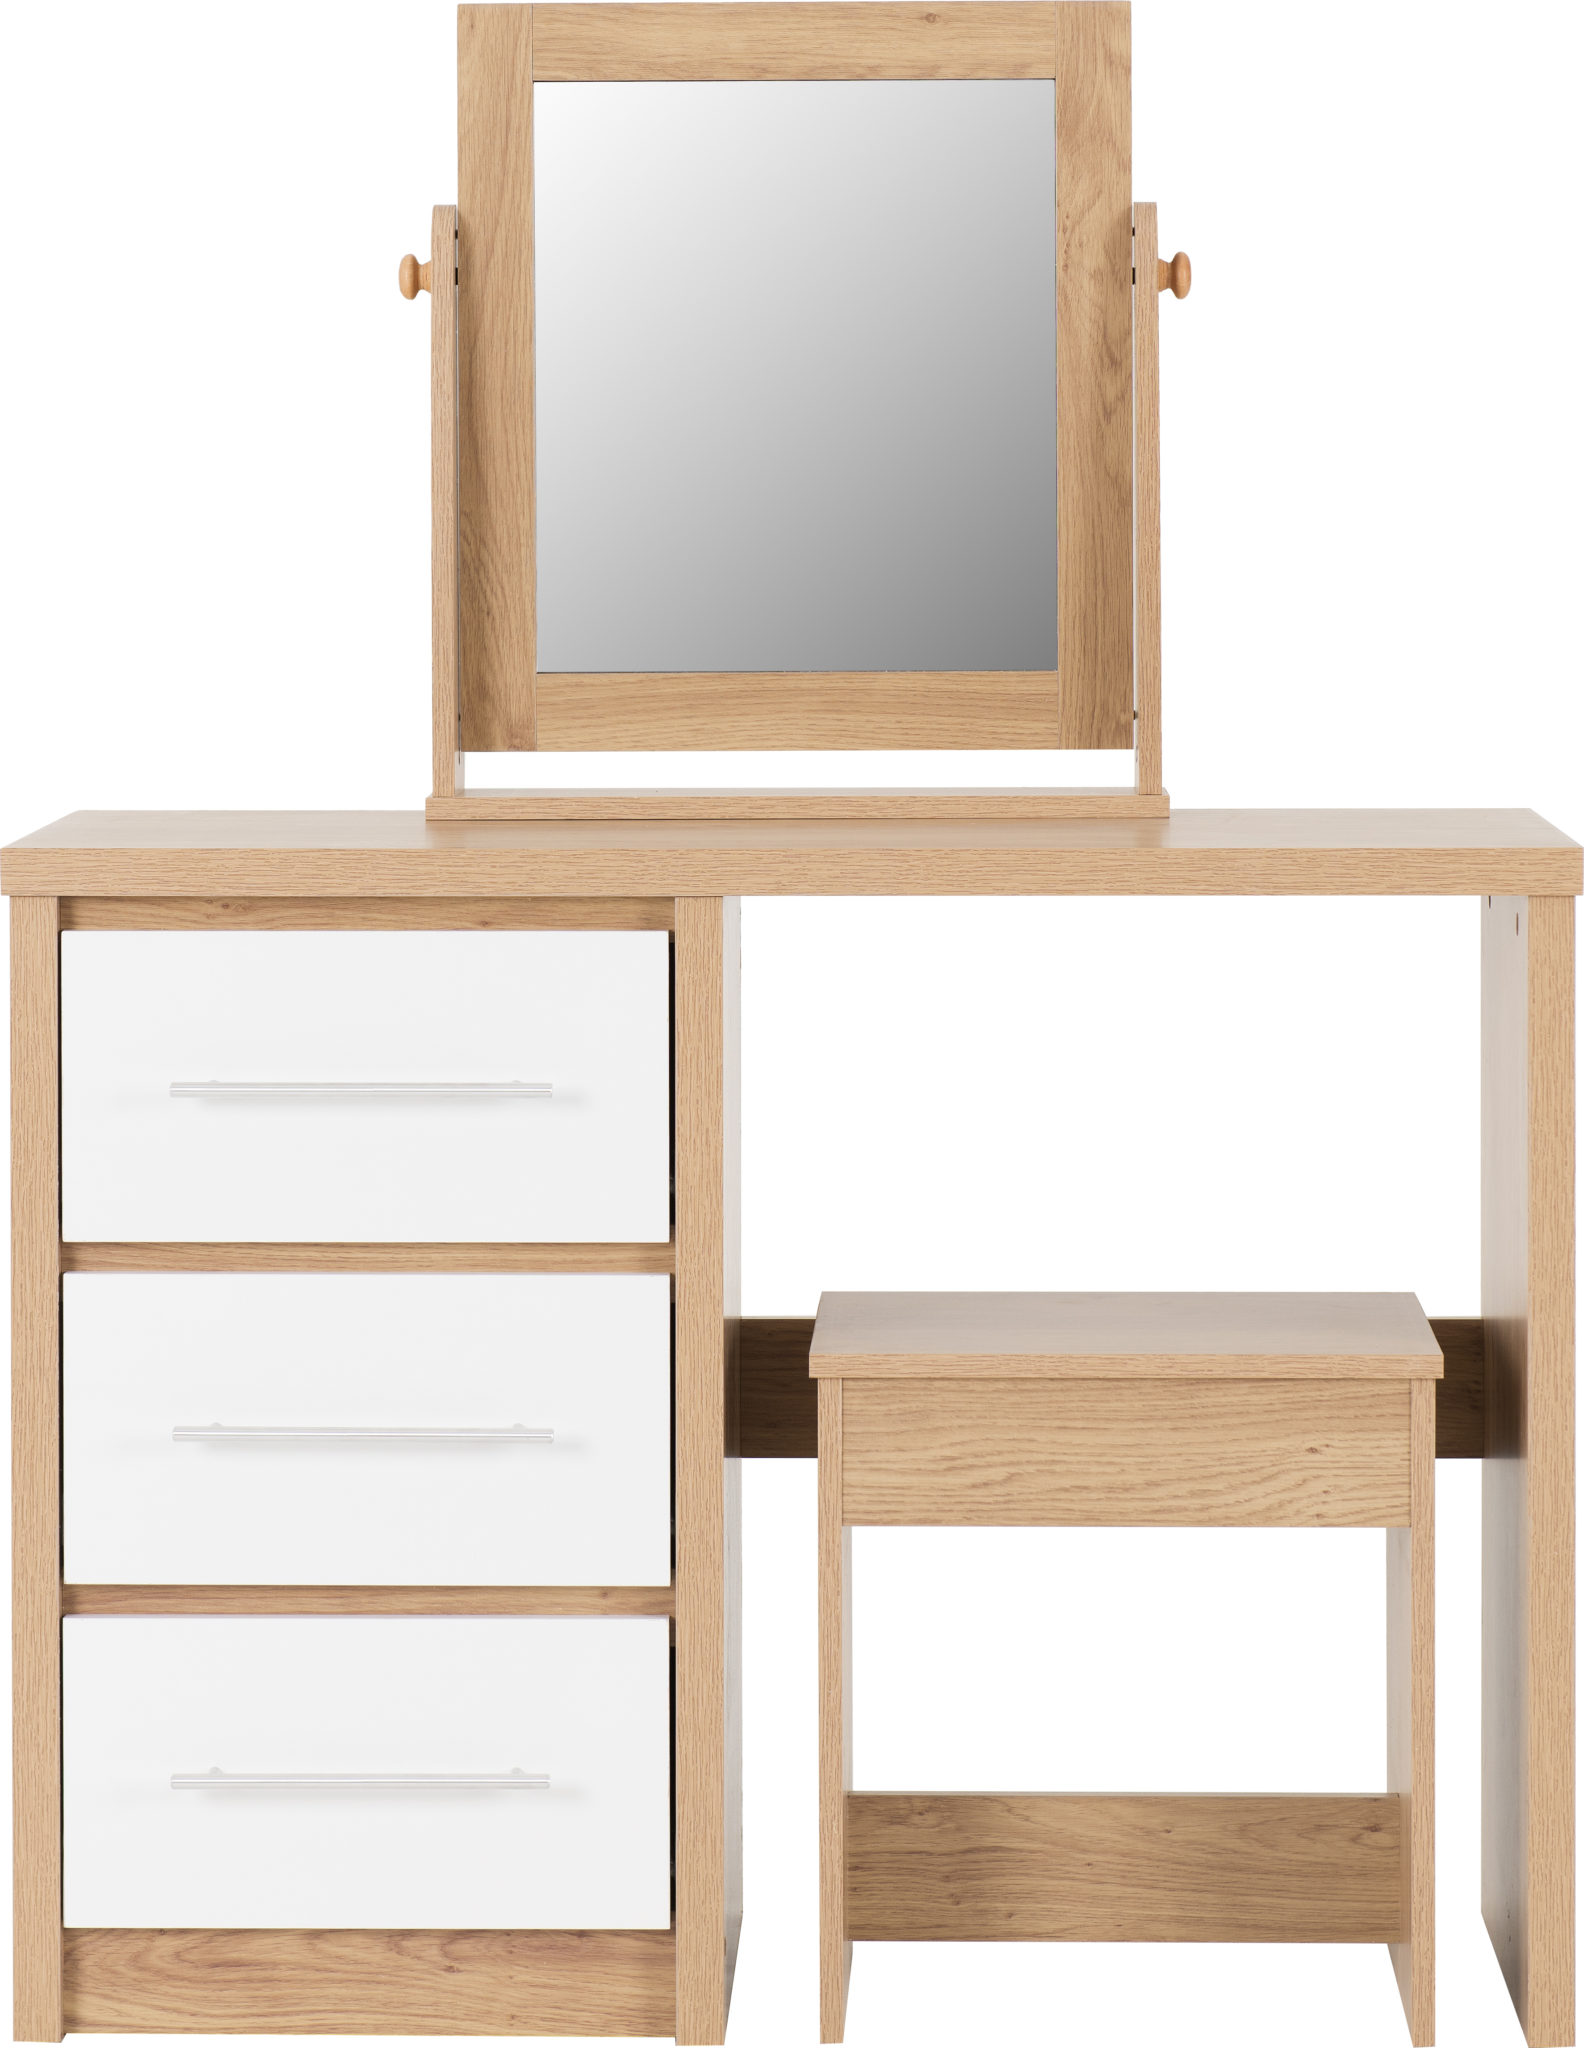 100 107 016 Seville 3 Drawer Dressing Table Set White Gloss Light Oak Effect Veneer Seconique